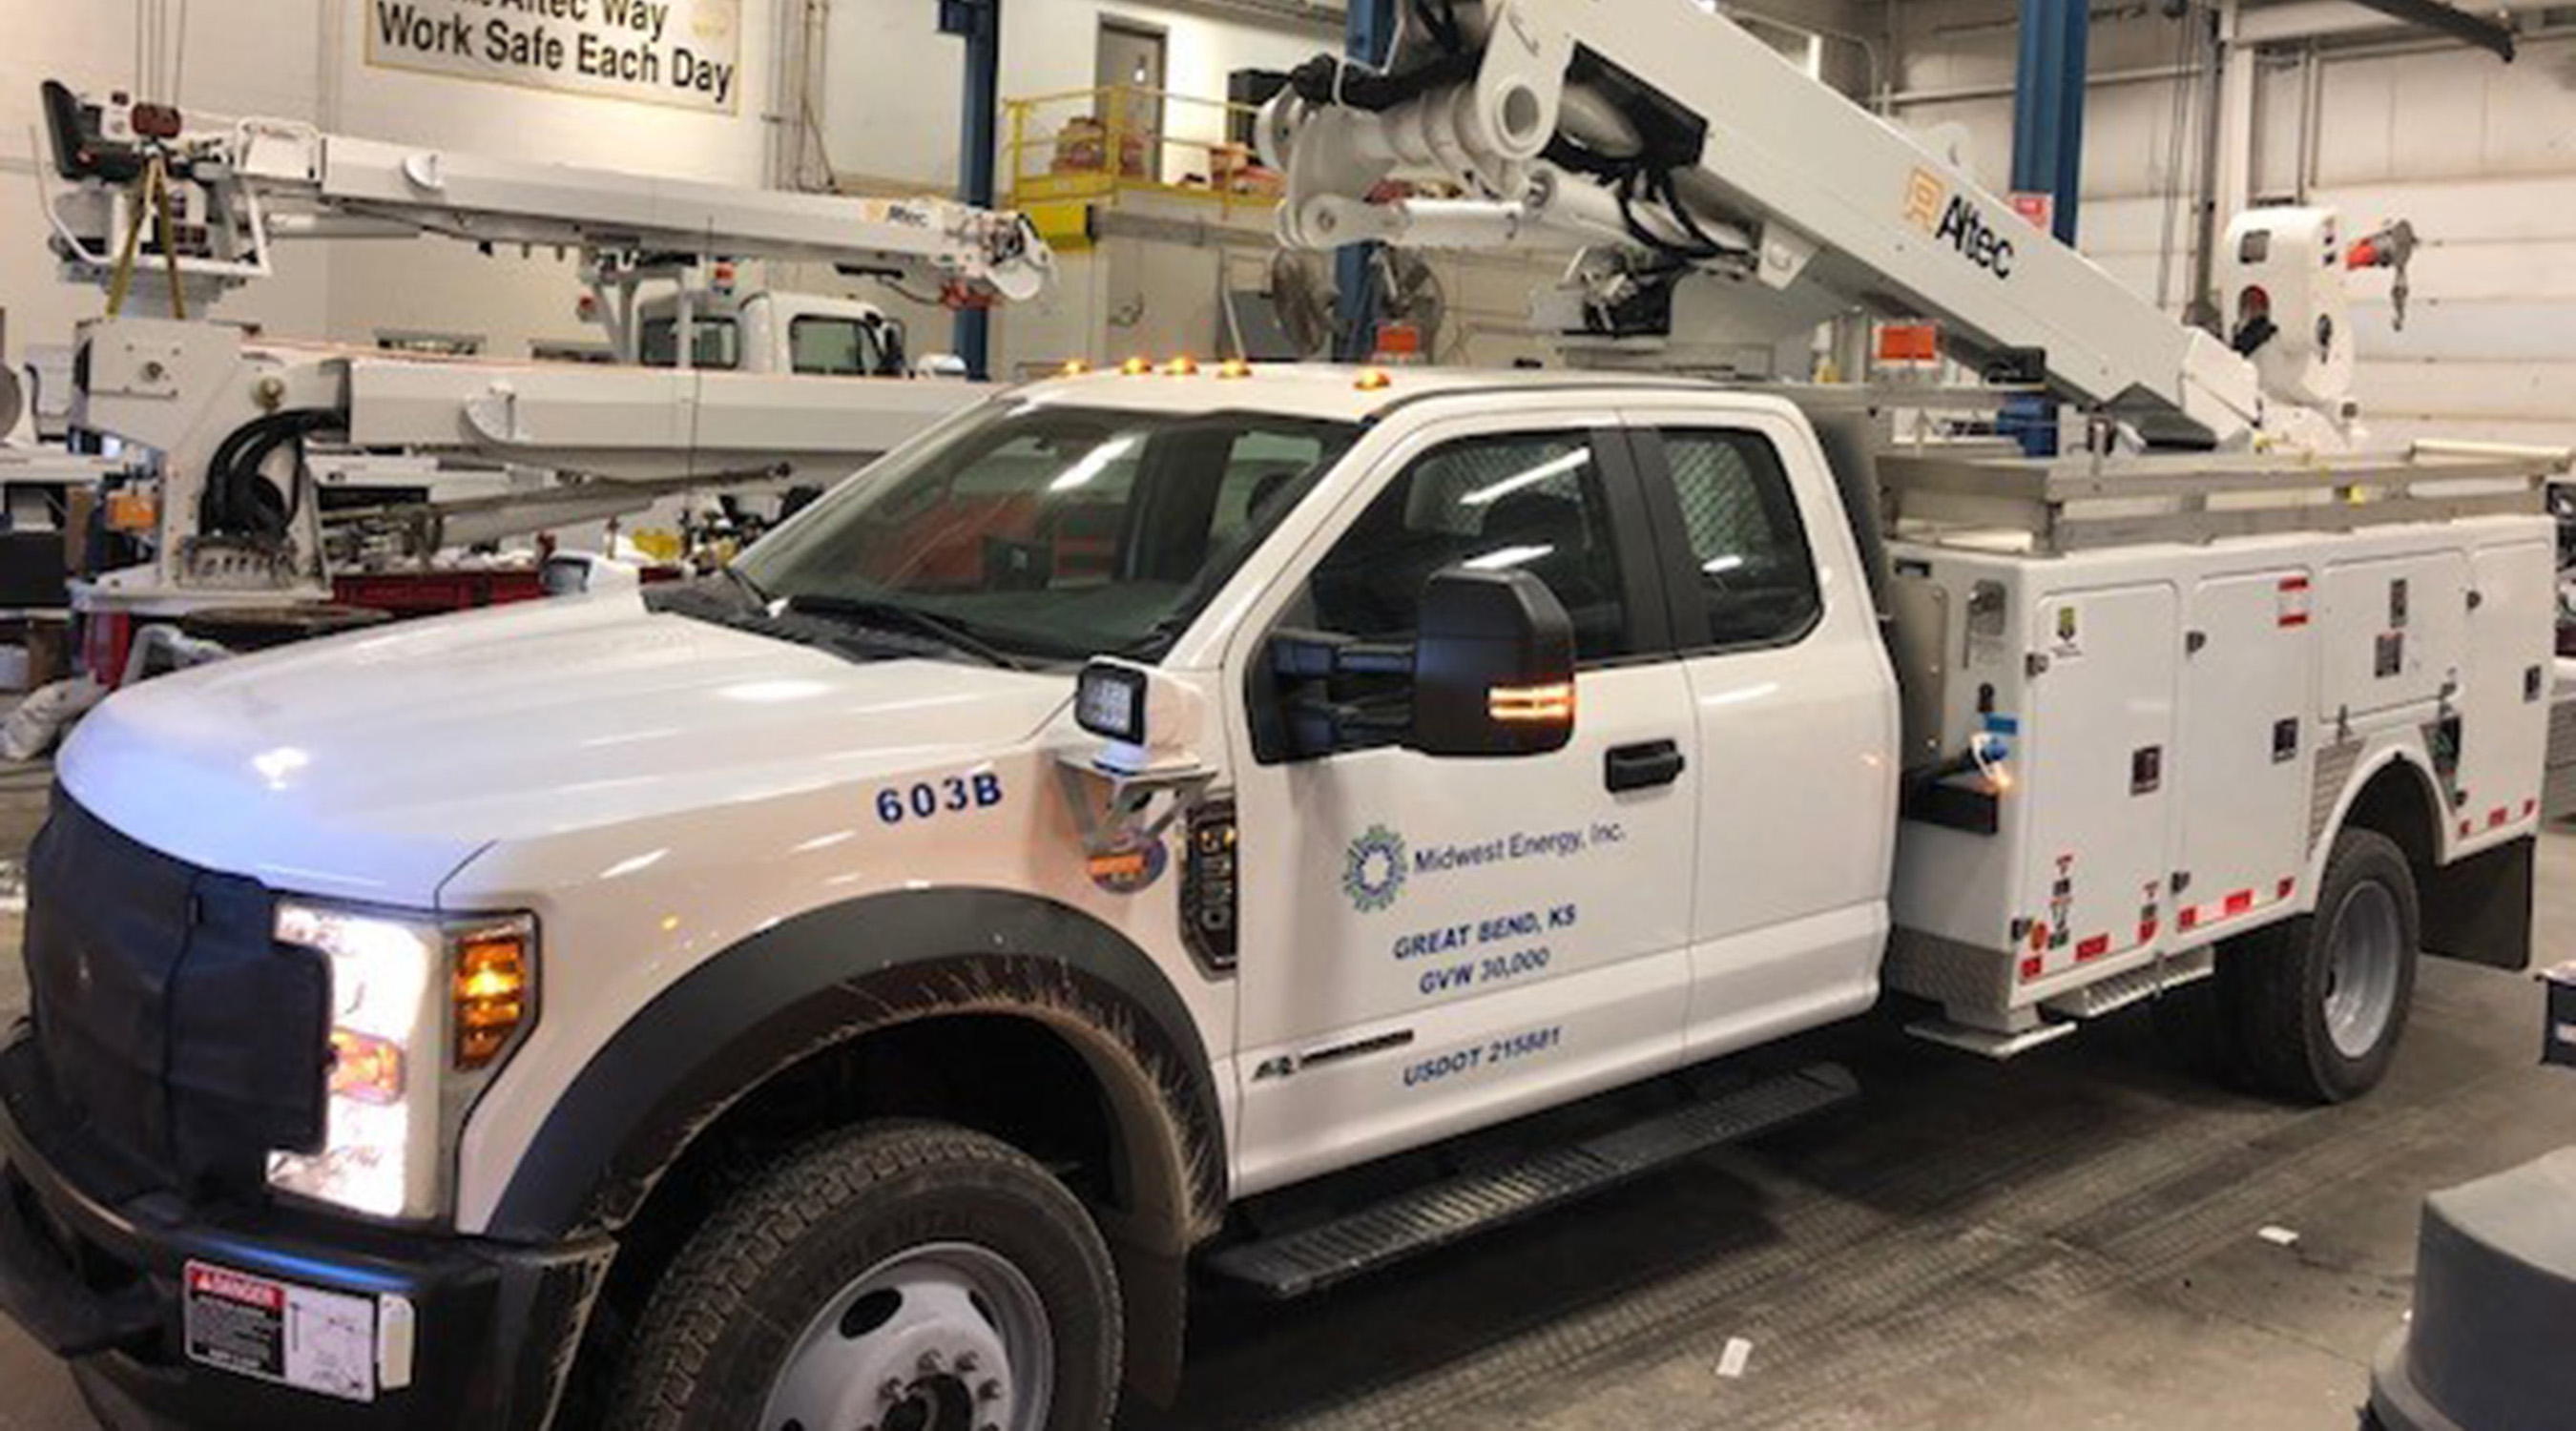 A photo of a Midwest Energy service bucket truck inside of a garage.